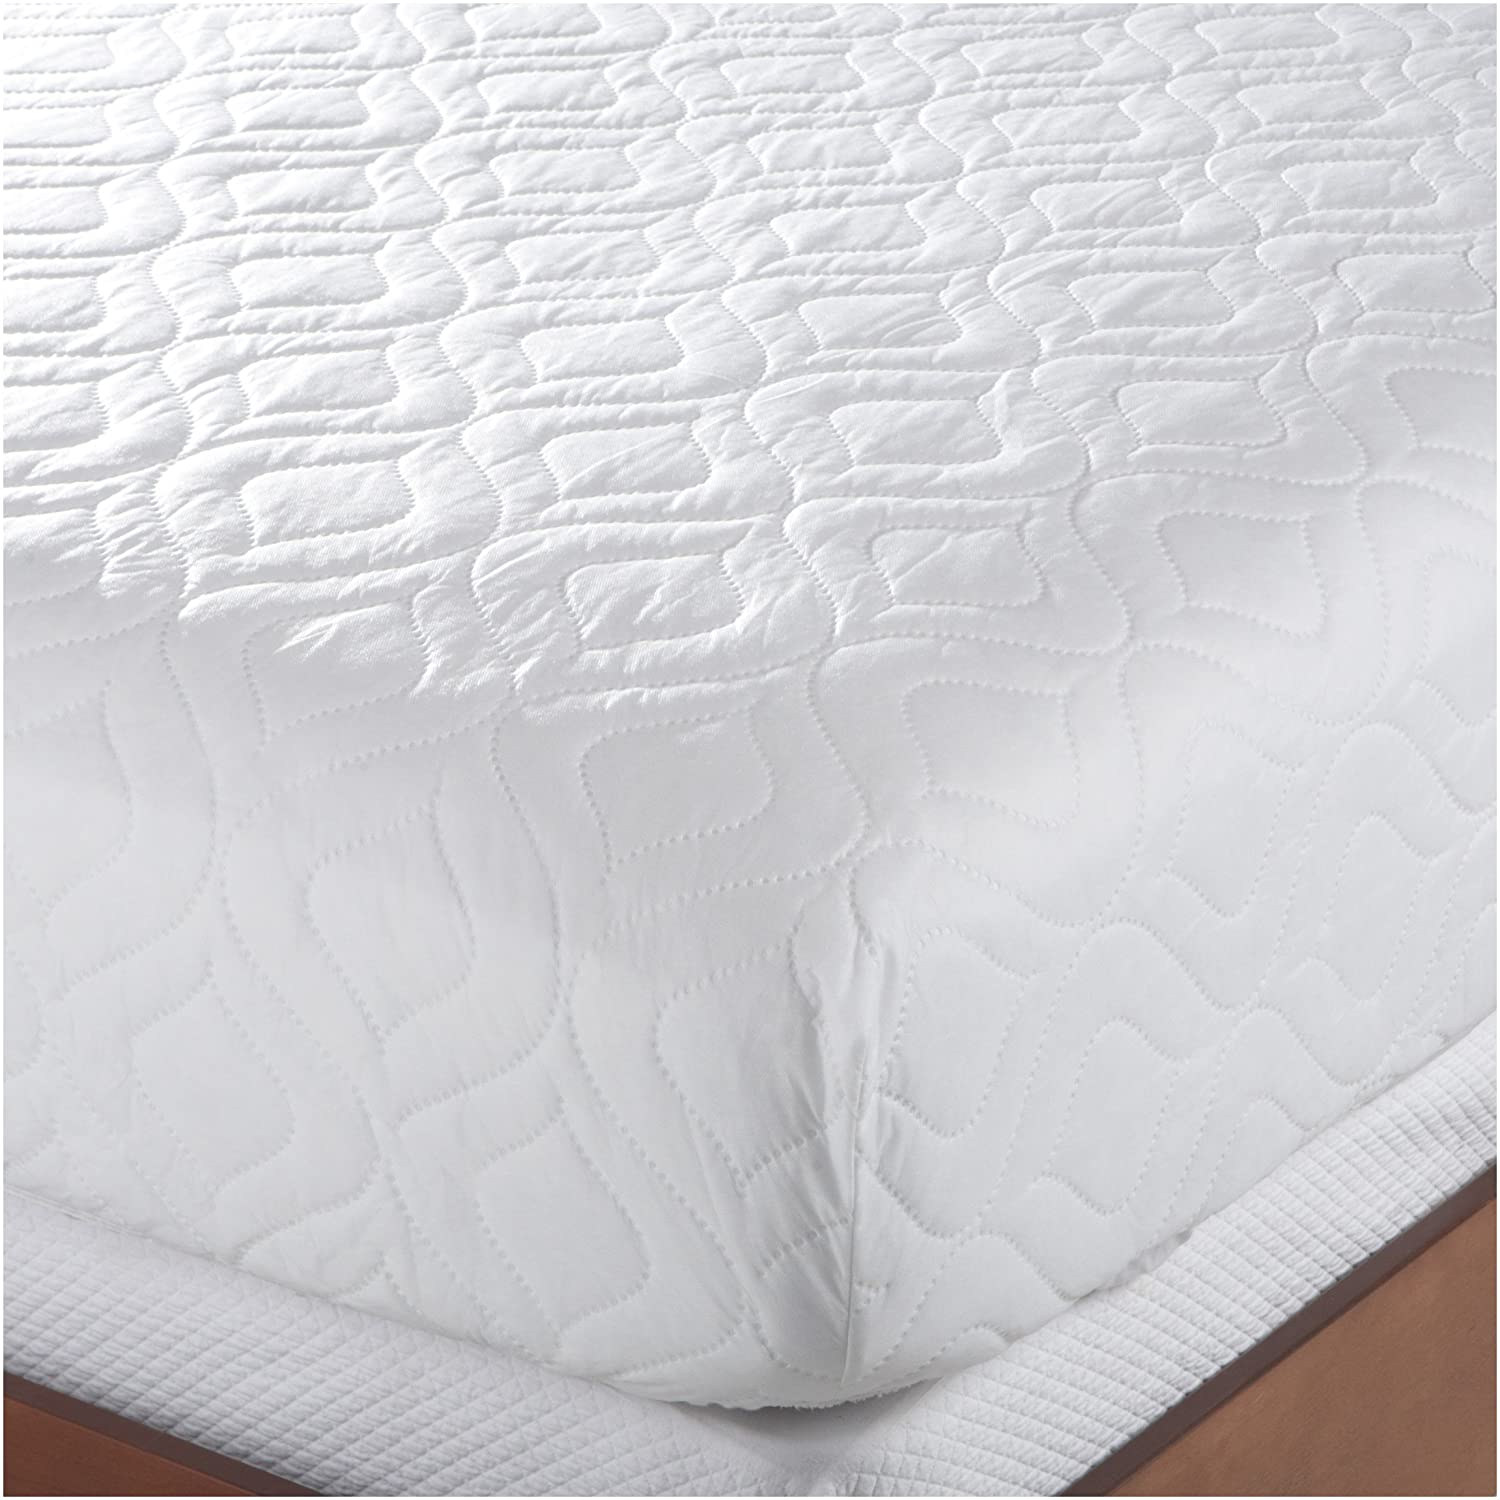 definition pad pillow protect size memory luxury apply design cover top mattress topper resistant twin timeless home to kingcool high cool interior pillowtop decor king your